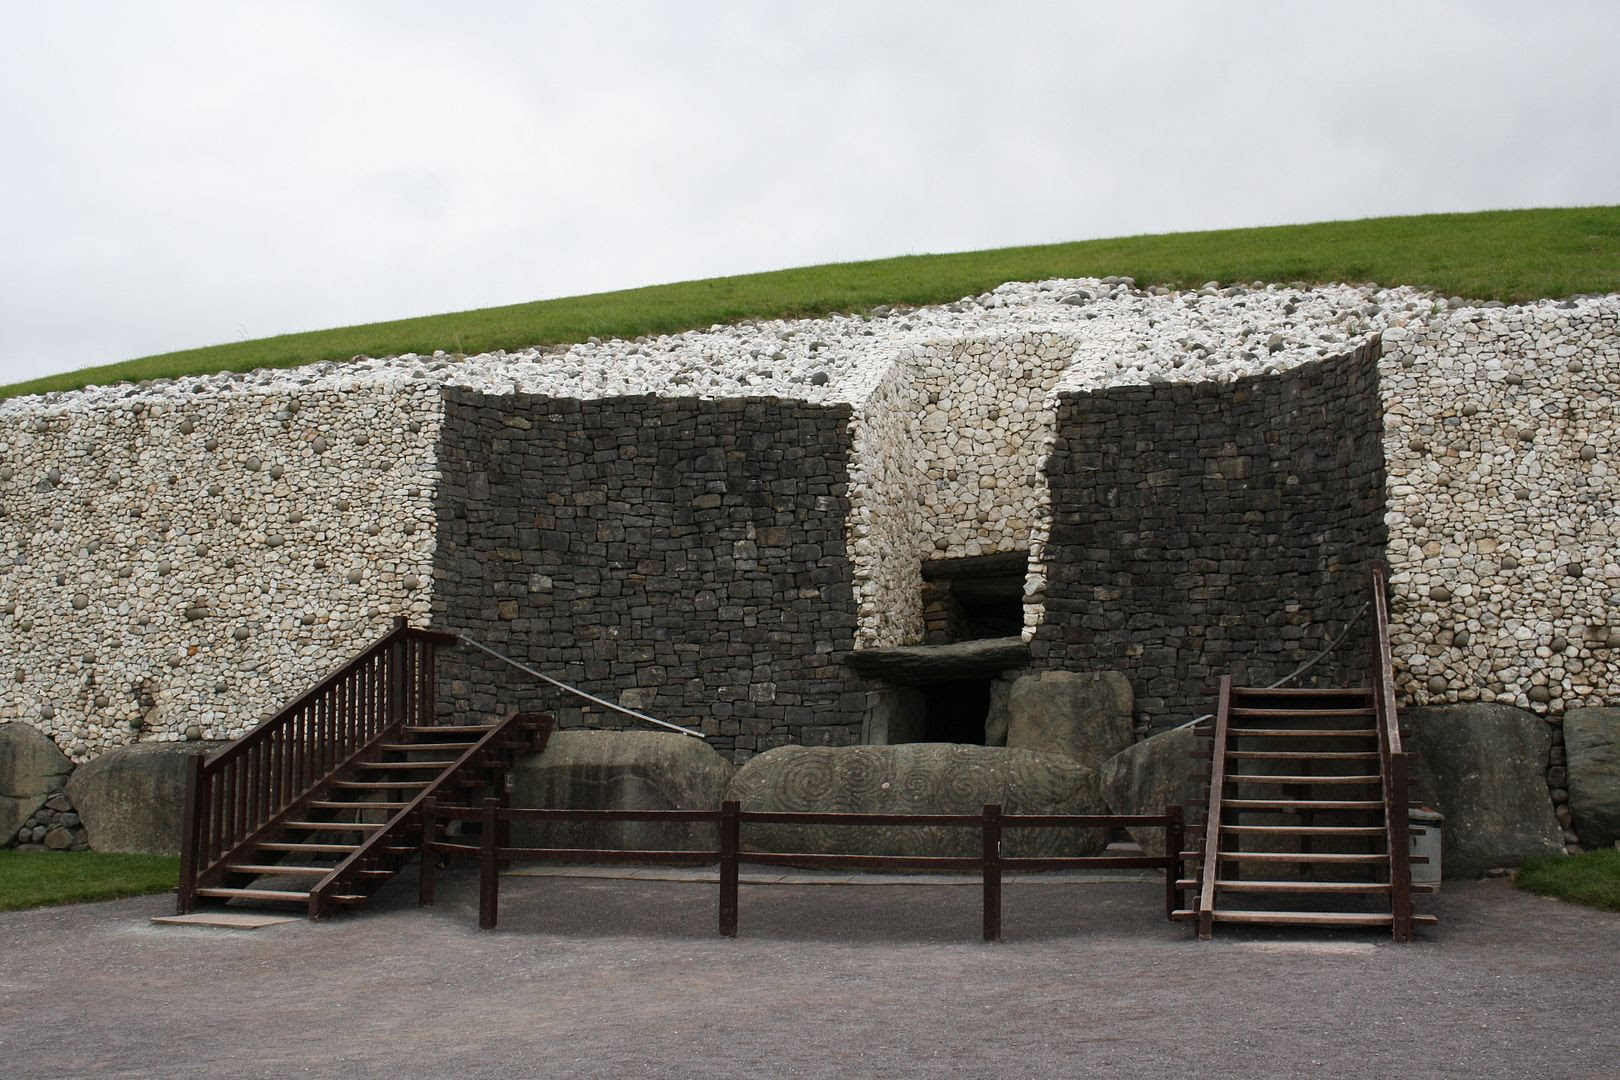 Newgrange at Bru na Boinne, Ireland photo IMG_4260_zps7mxzx4jv.jpg